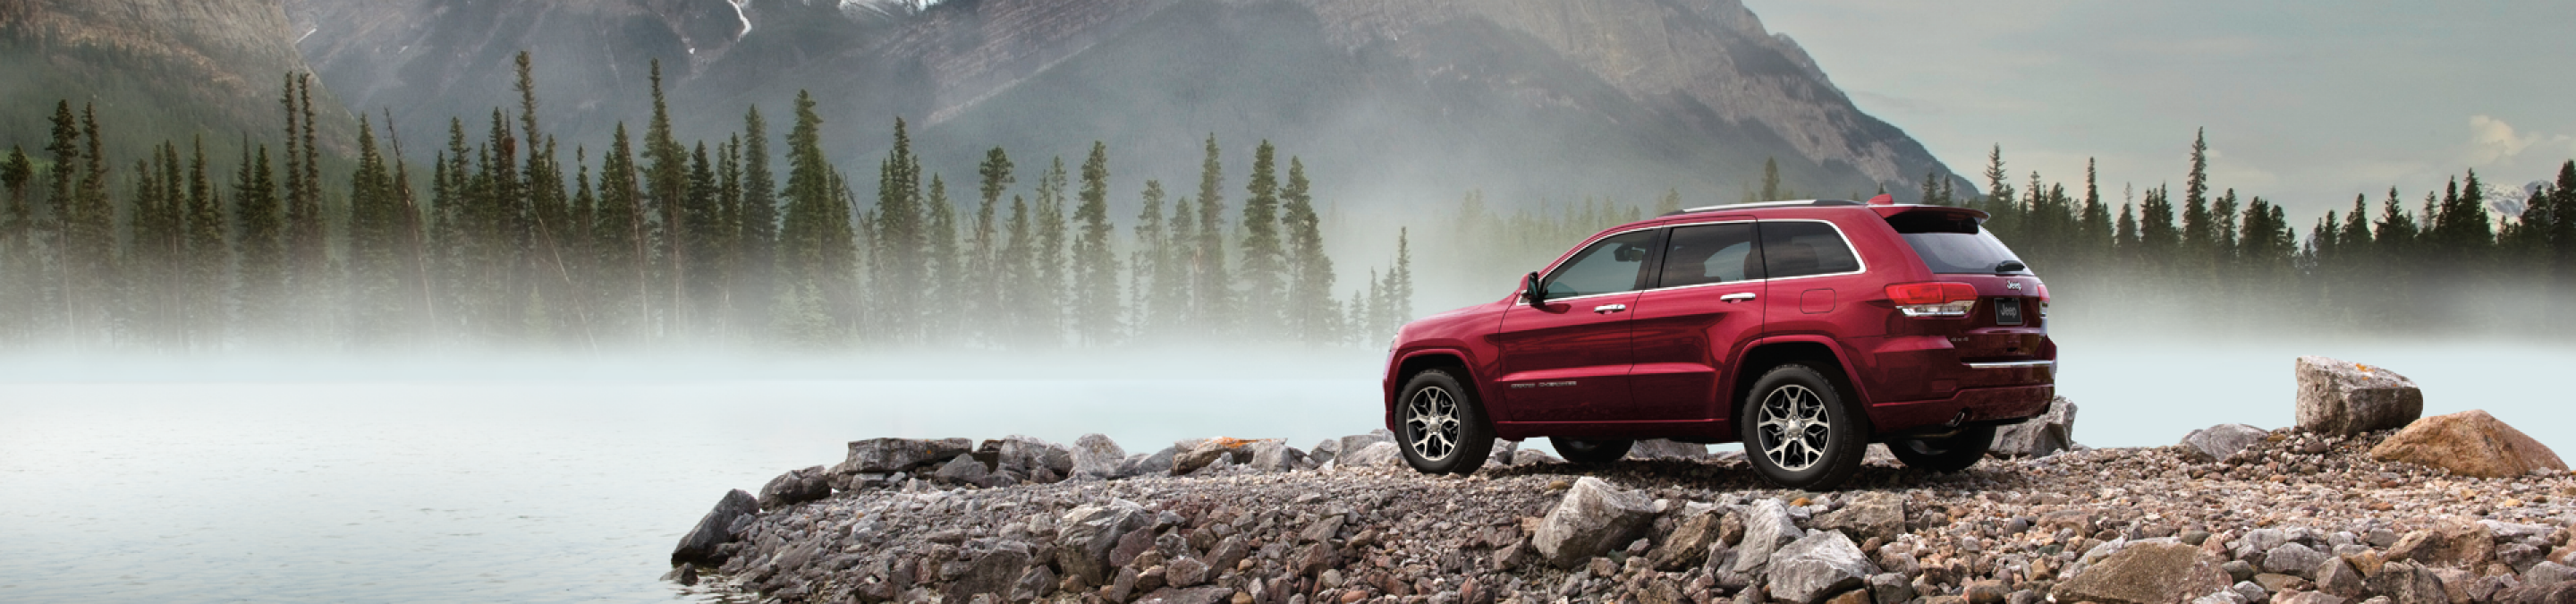 Grand Cherokee The New Frontier Of Active Safety And Security